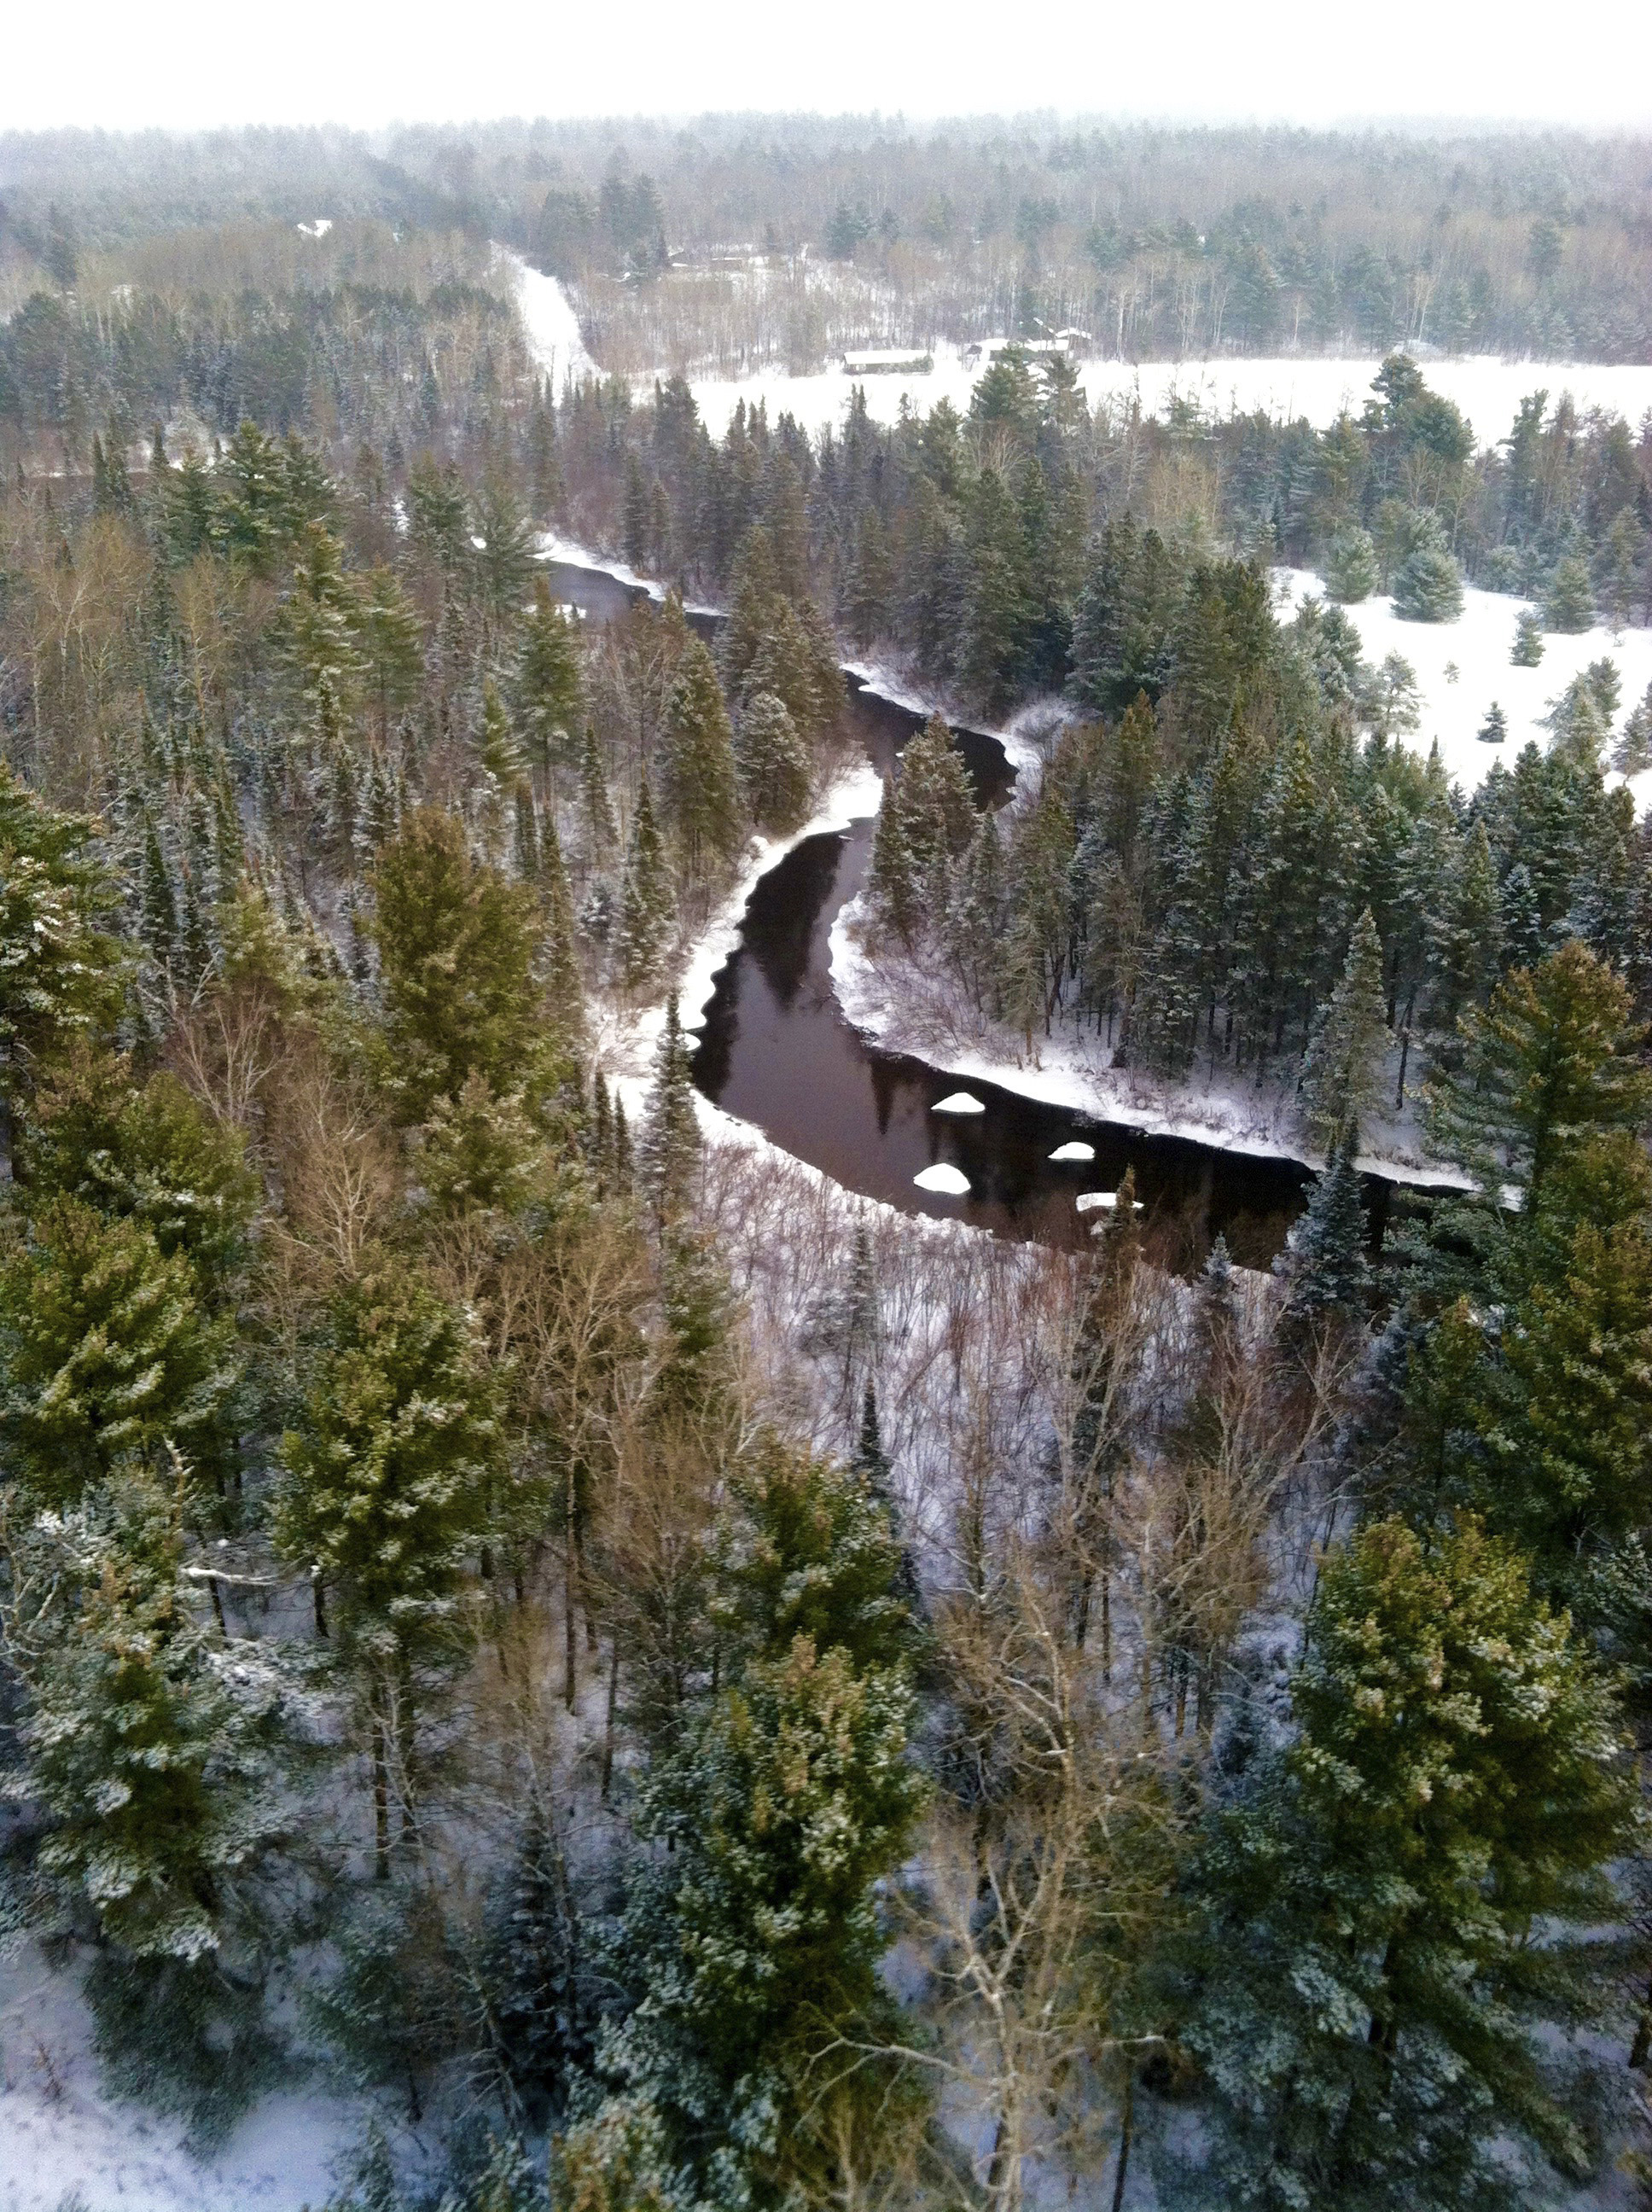 """Wisconsin Winter From the Air"" takes us into the sky again as we marvel at the wonders of winter."